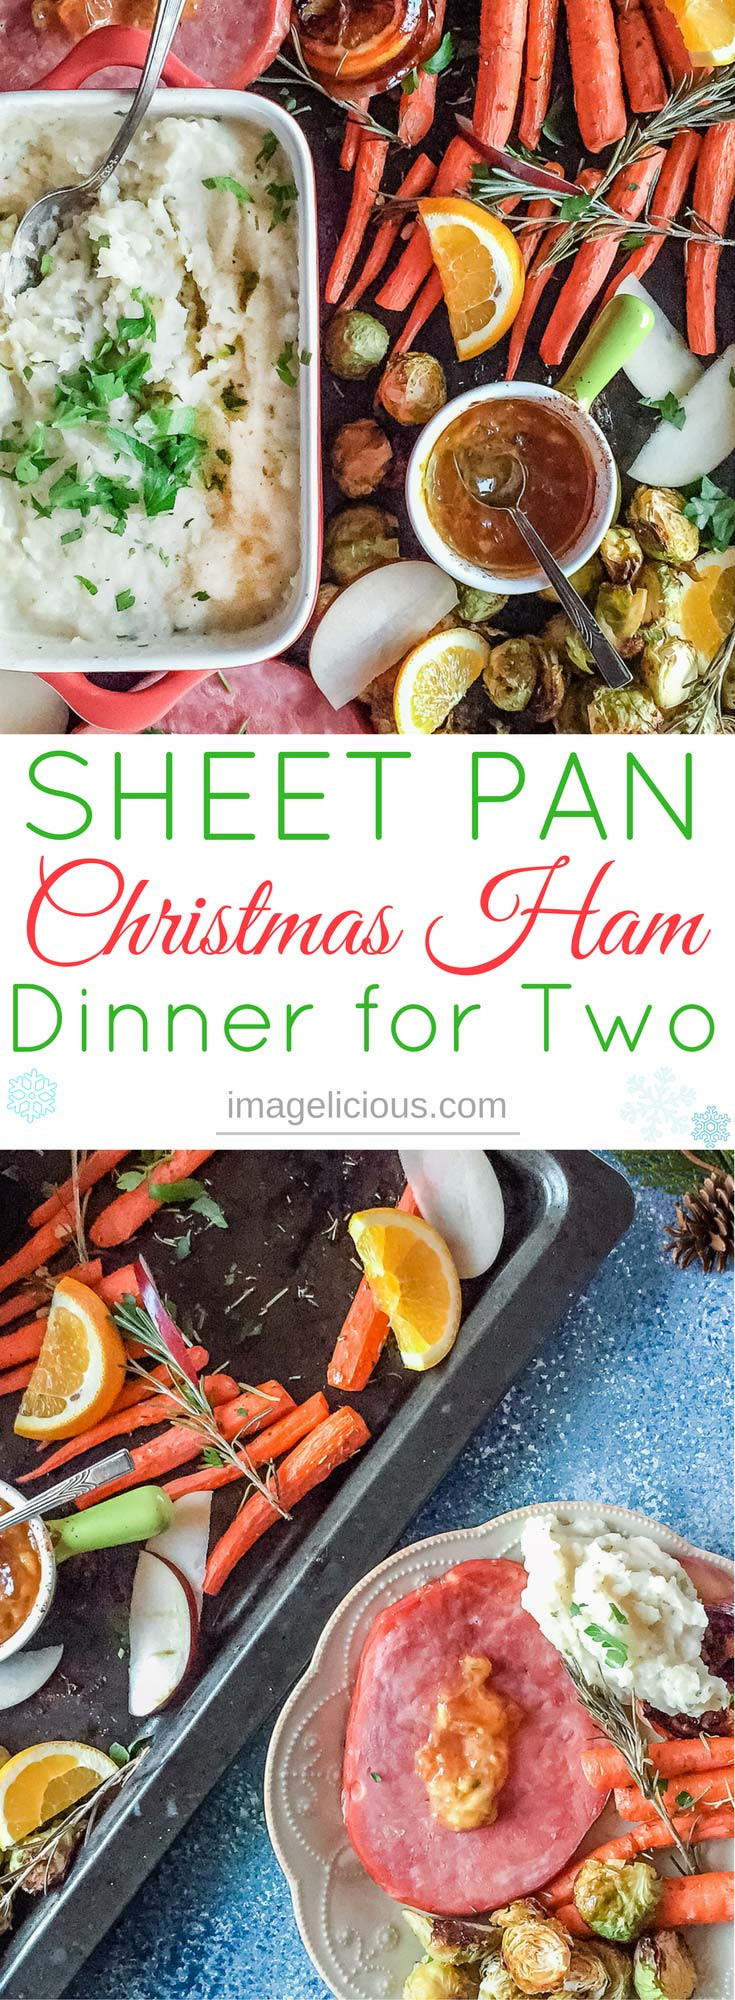 Easy Christmas Dinners For Two  Sheet Pan Christmas Ham Dinner For Two Imagelicious